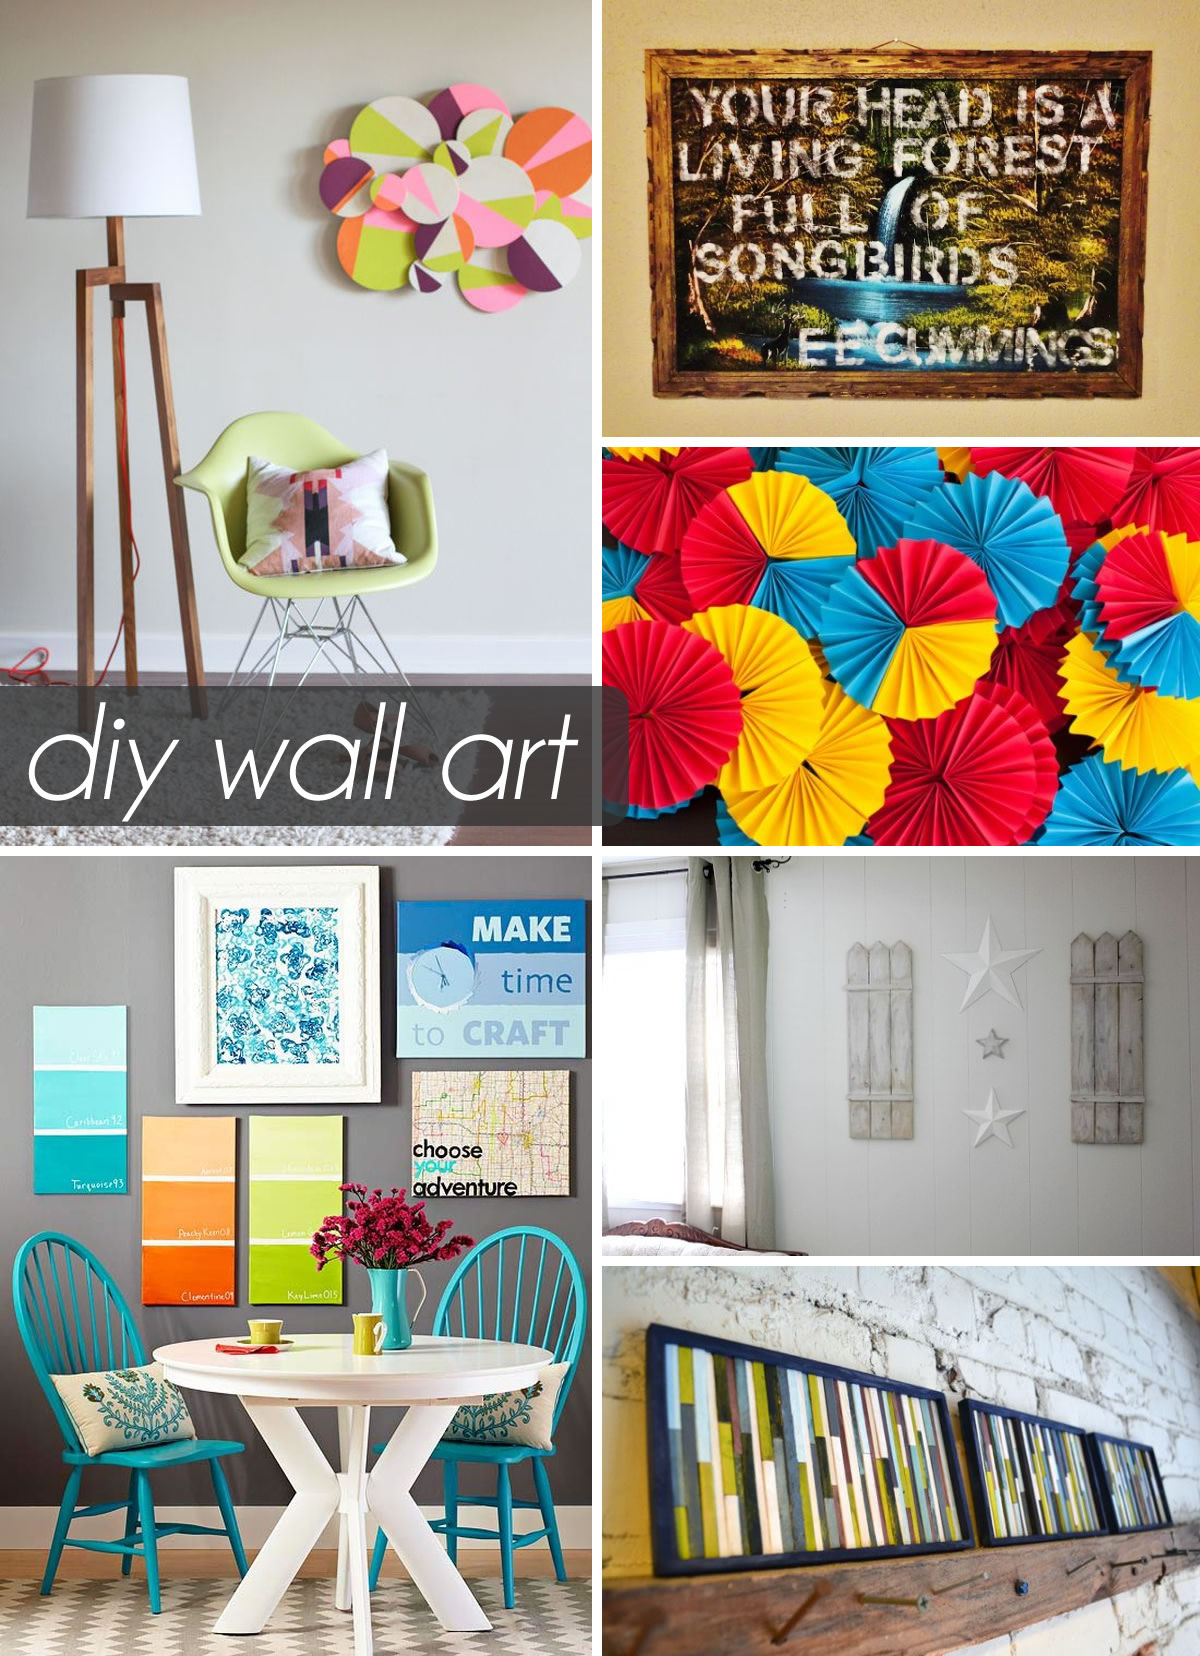 Do It Yourself Home Decorating Ideas: 50 Beautiful DIY Wall Art Ideas For Your Home